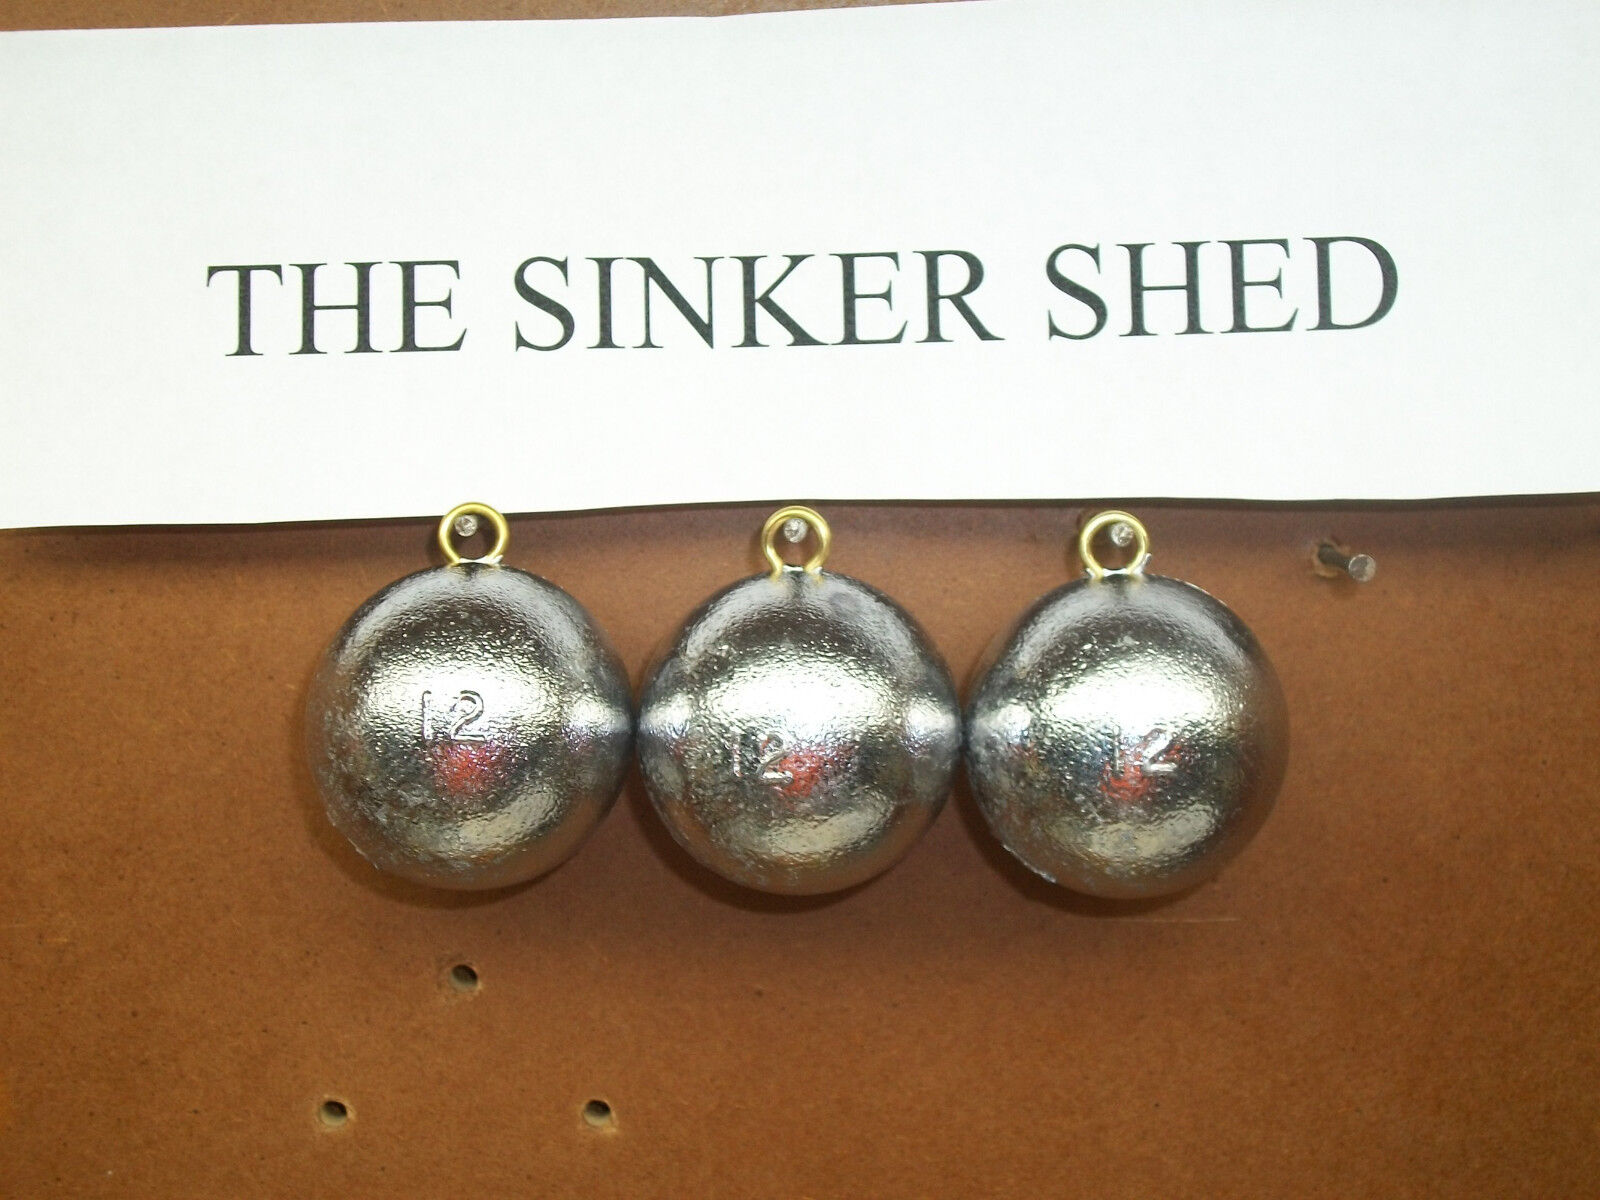 12 oz cannonball sinkers - - choose quantity 10/20 - - FREE SHIPPING 9842be